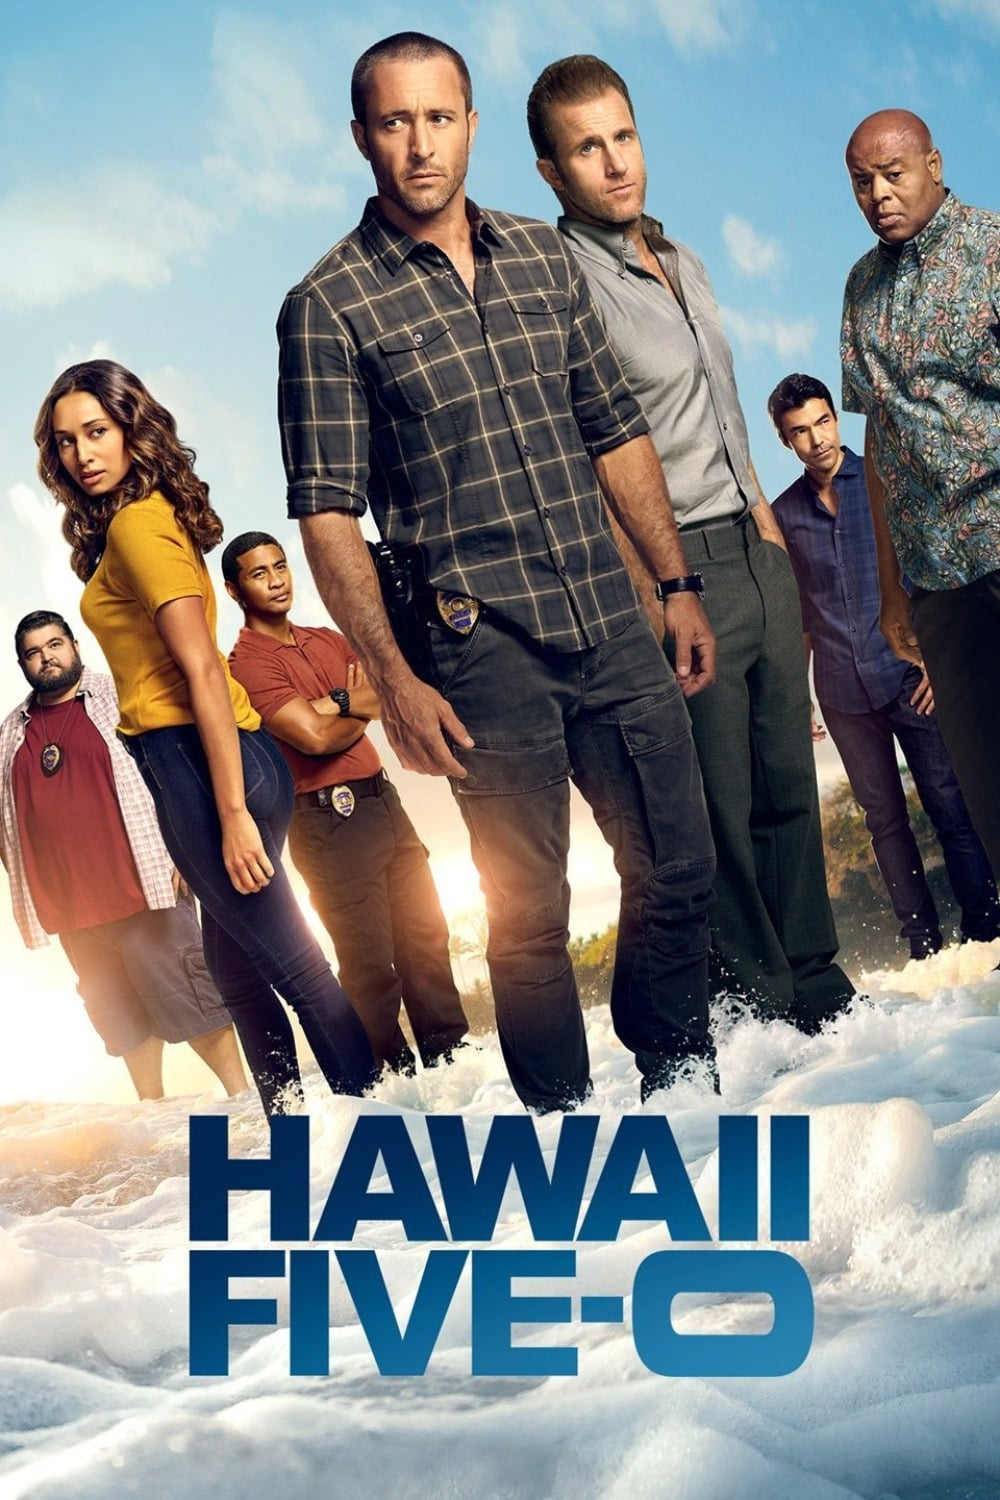 Hawaii Five-0, 2010